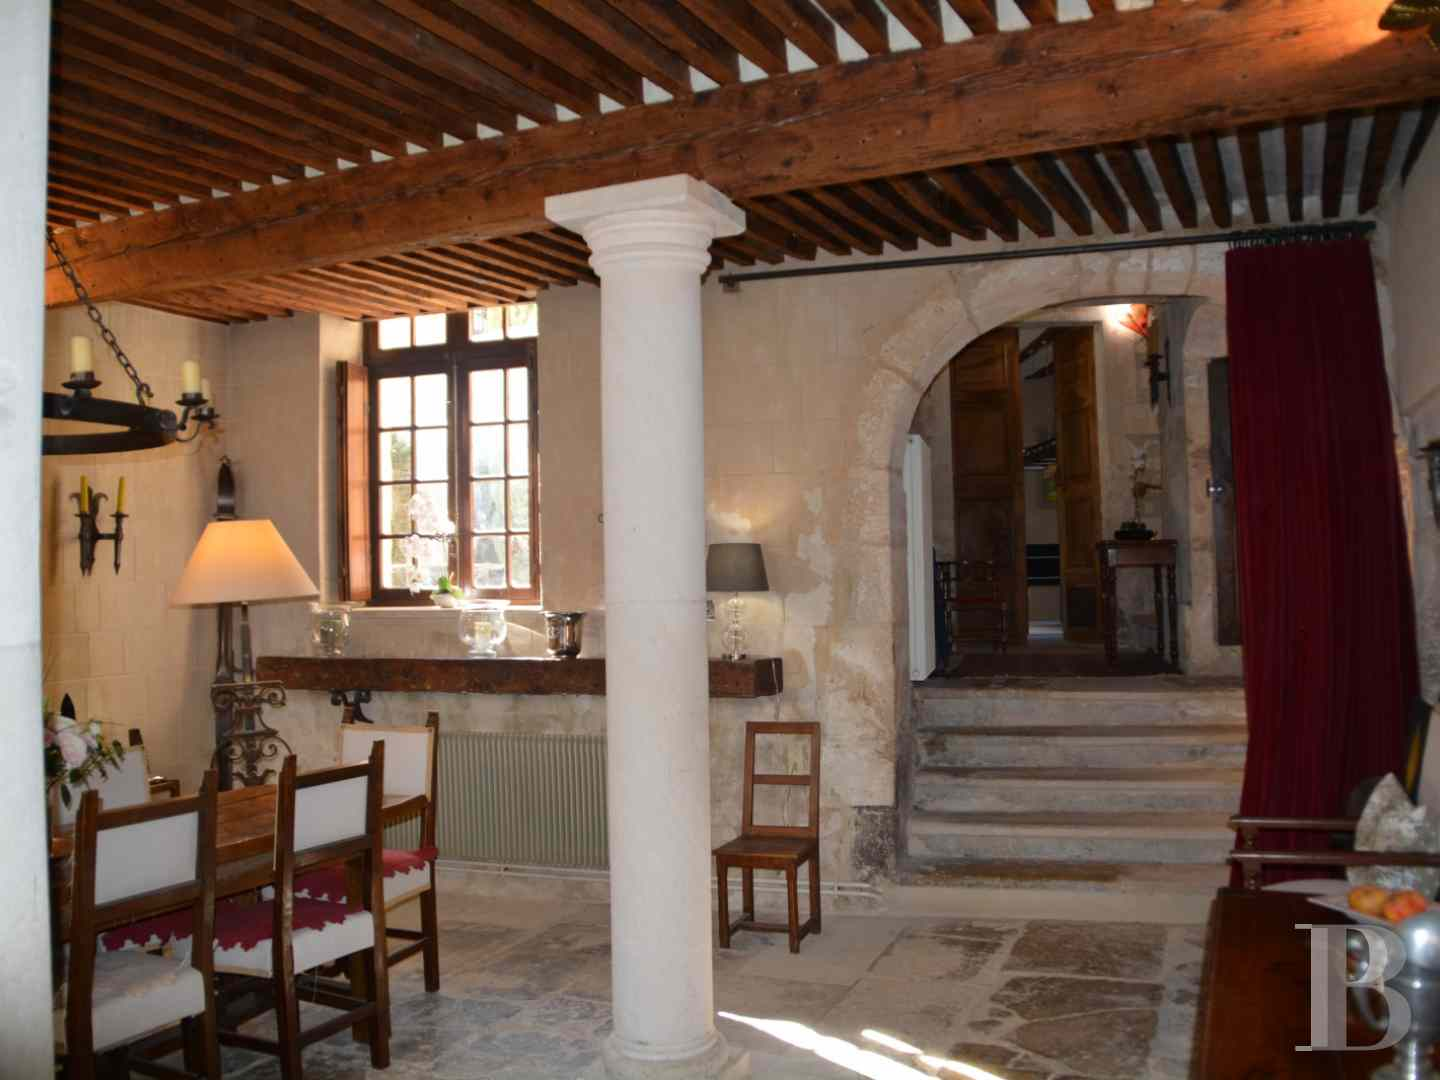 mansion houses for sale France provence cote dazur mansion houses - 8 zoom